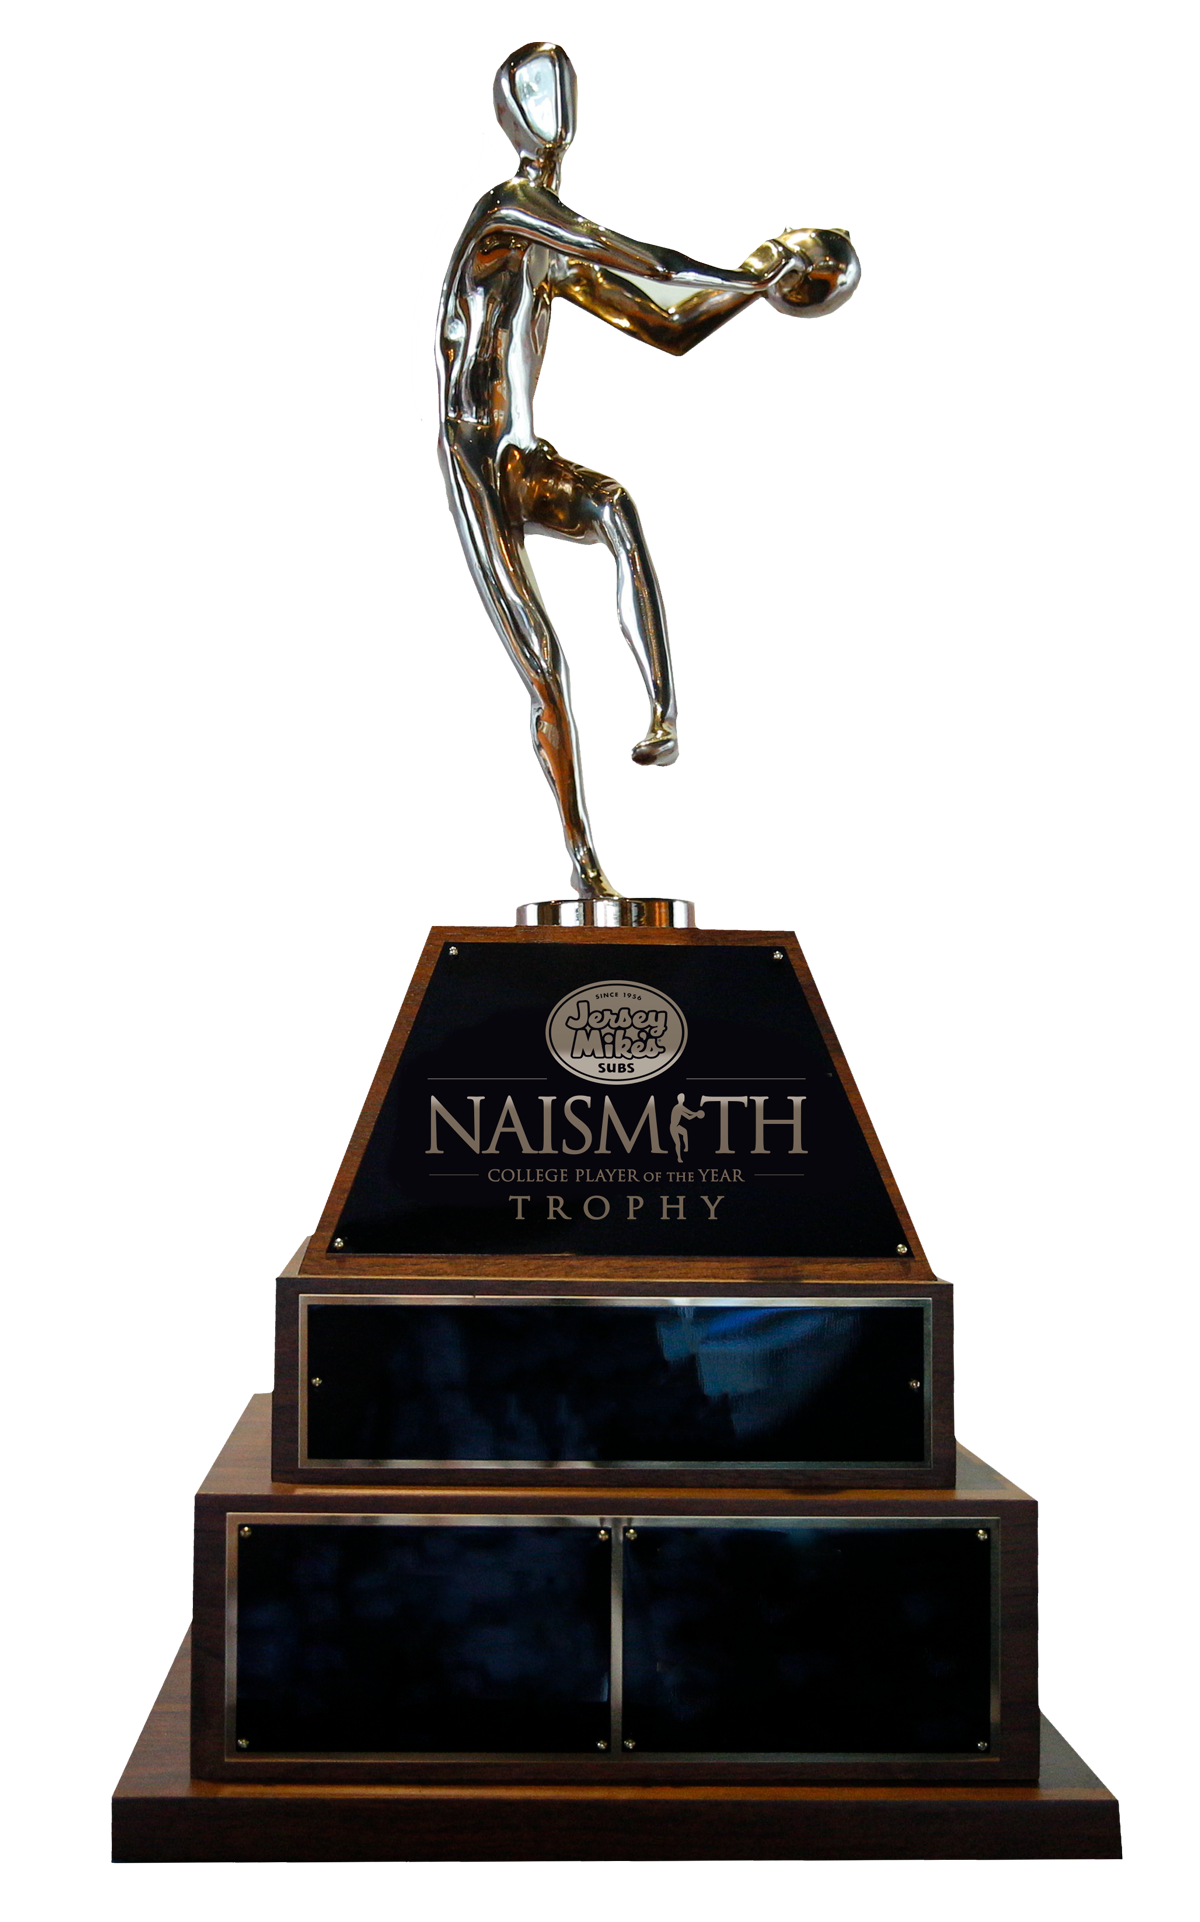 Jersey Mike's Naismith Trophy